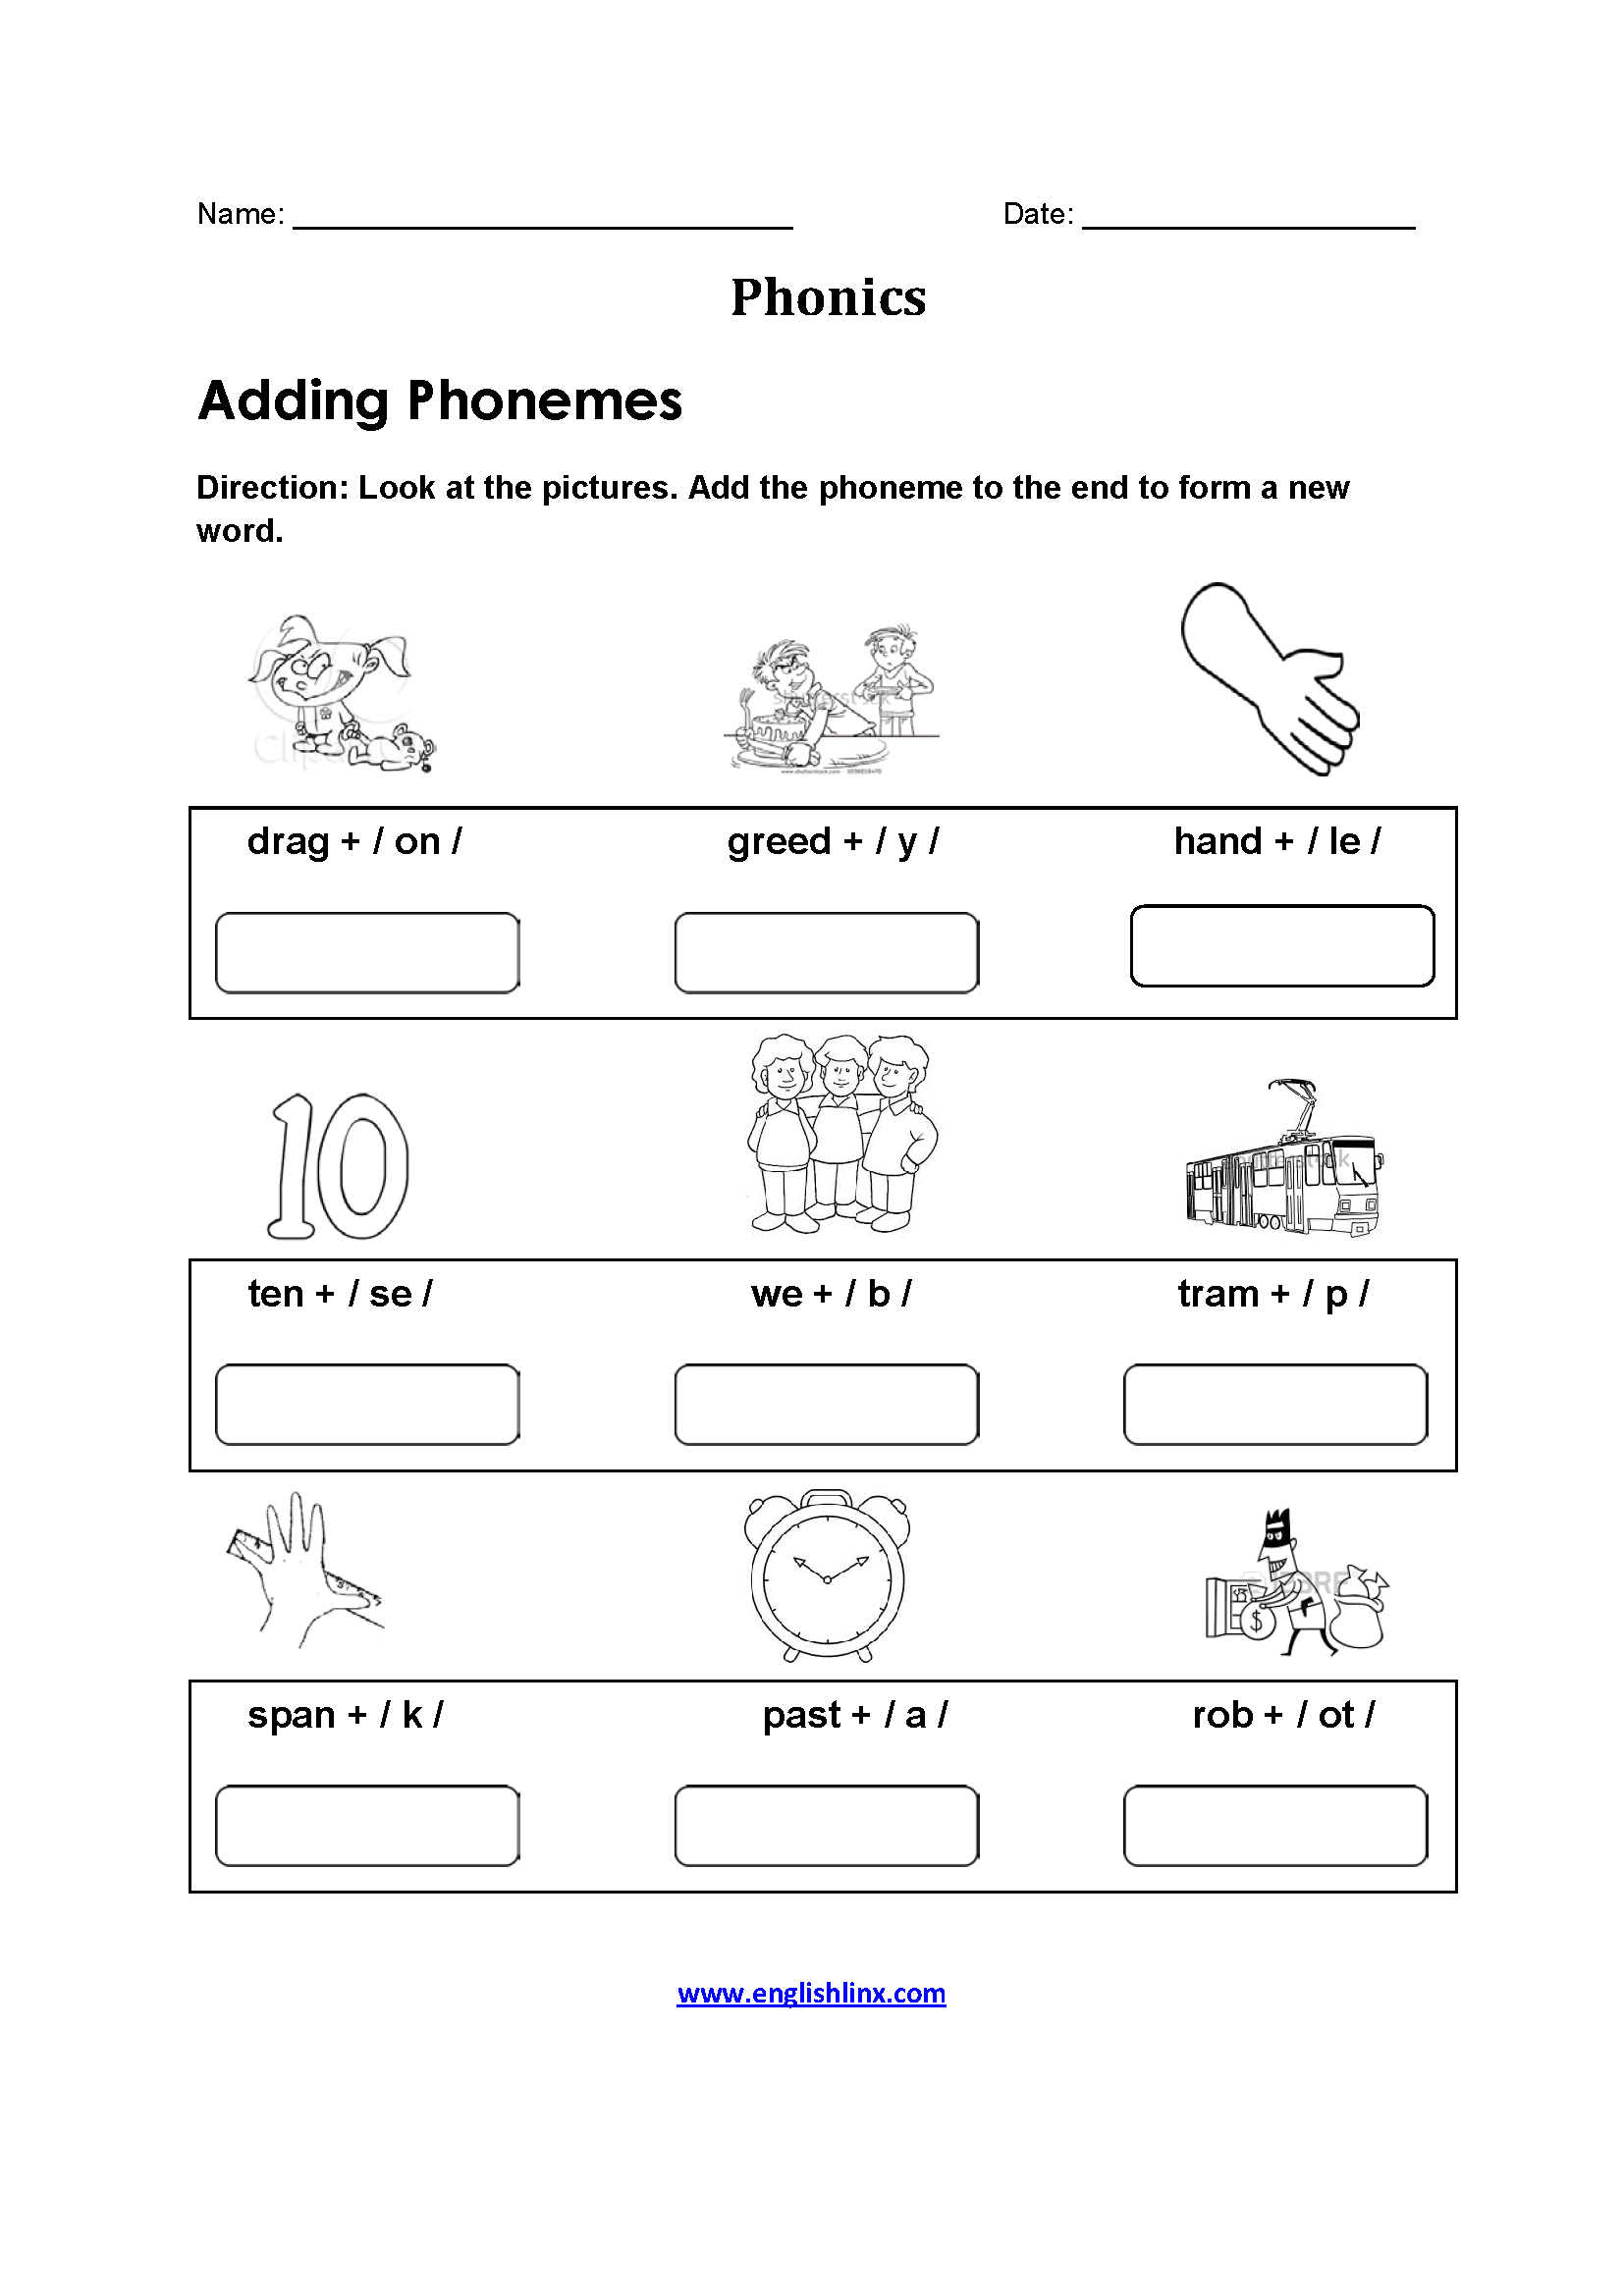 second grade phonics – investoption club in addition Free Printable Ch Worksheets Adorable Phonics Activity For 3rd Grade also  in addition Jolly Phonics Worksheet Home Reading Programs For Toddlers as well Worksheets For 3rd Grade Reading Pre Math Kindergarten Shapes likewise 3rd Grade Phonics Worksheets To Learn   Math Worksheet for Kids additionally Long Vowel And Short Vowel Worksheets Long And Short Vowel moreover  likewise Phonics for 5th Grade Worksheets – aggelies online eu moreover Mental Health Worksheets For Kids Free Grade Writing Behavior Charts moreover Englishlinx     Phonics Worksheets further  furthermore  together with 12 Best RF 3 Phonics and Word Recognition images     Sight besides  additionally Worksheets For Kindergarten Phonics Science 5th Grade Math Main Idea. on phonics for 5th grade worksheets